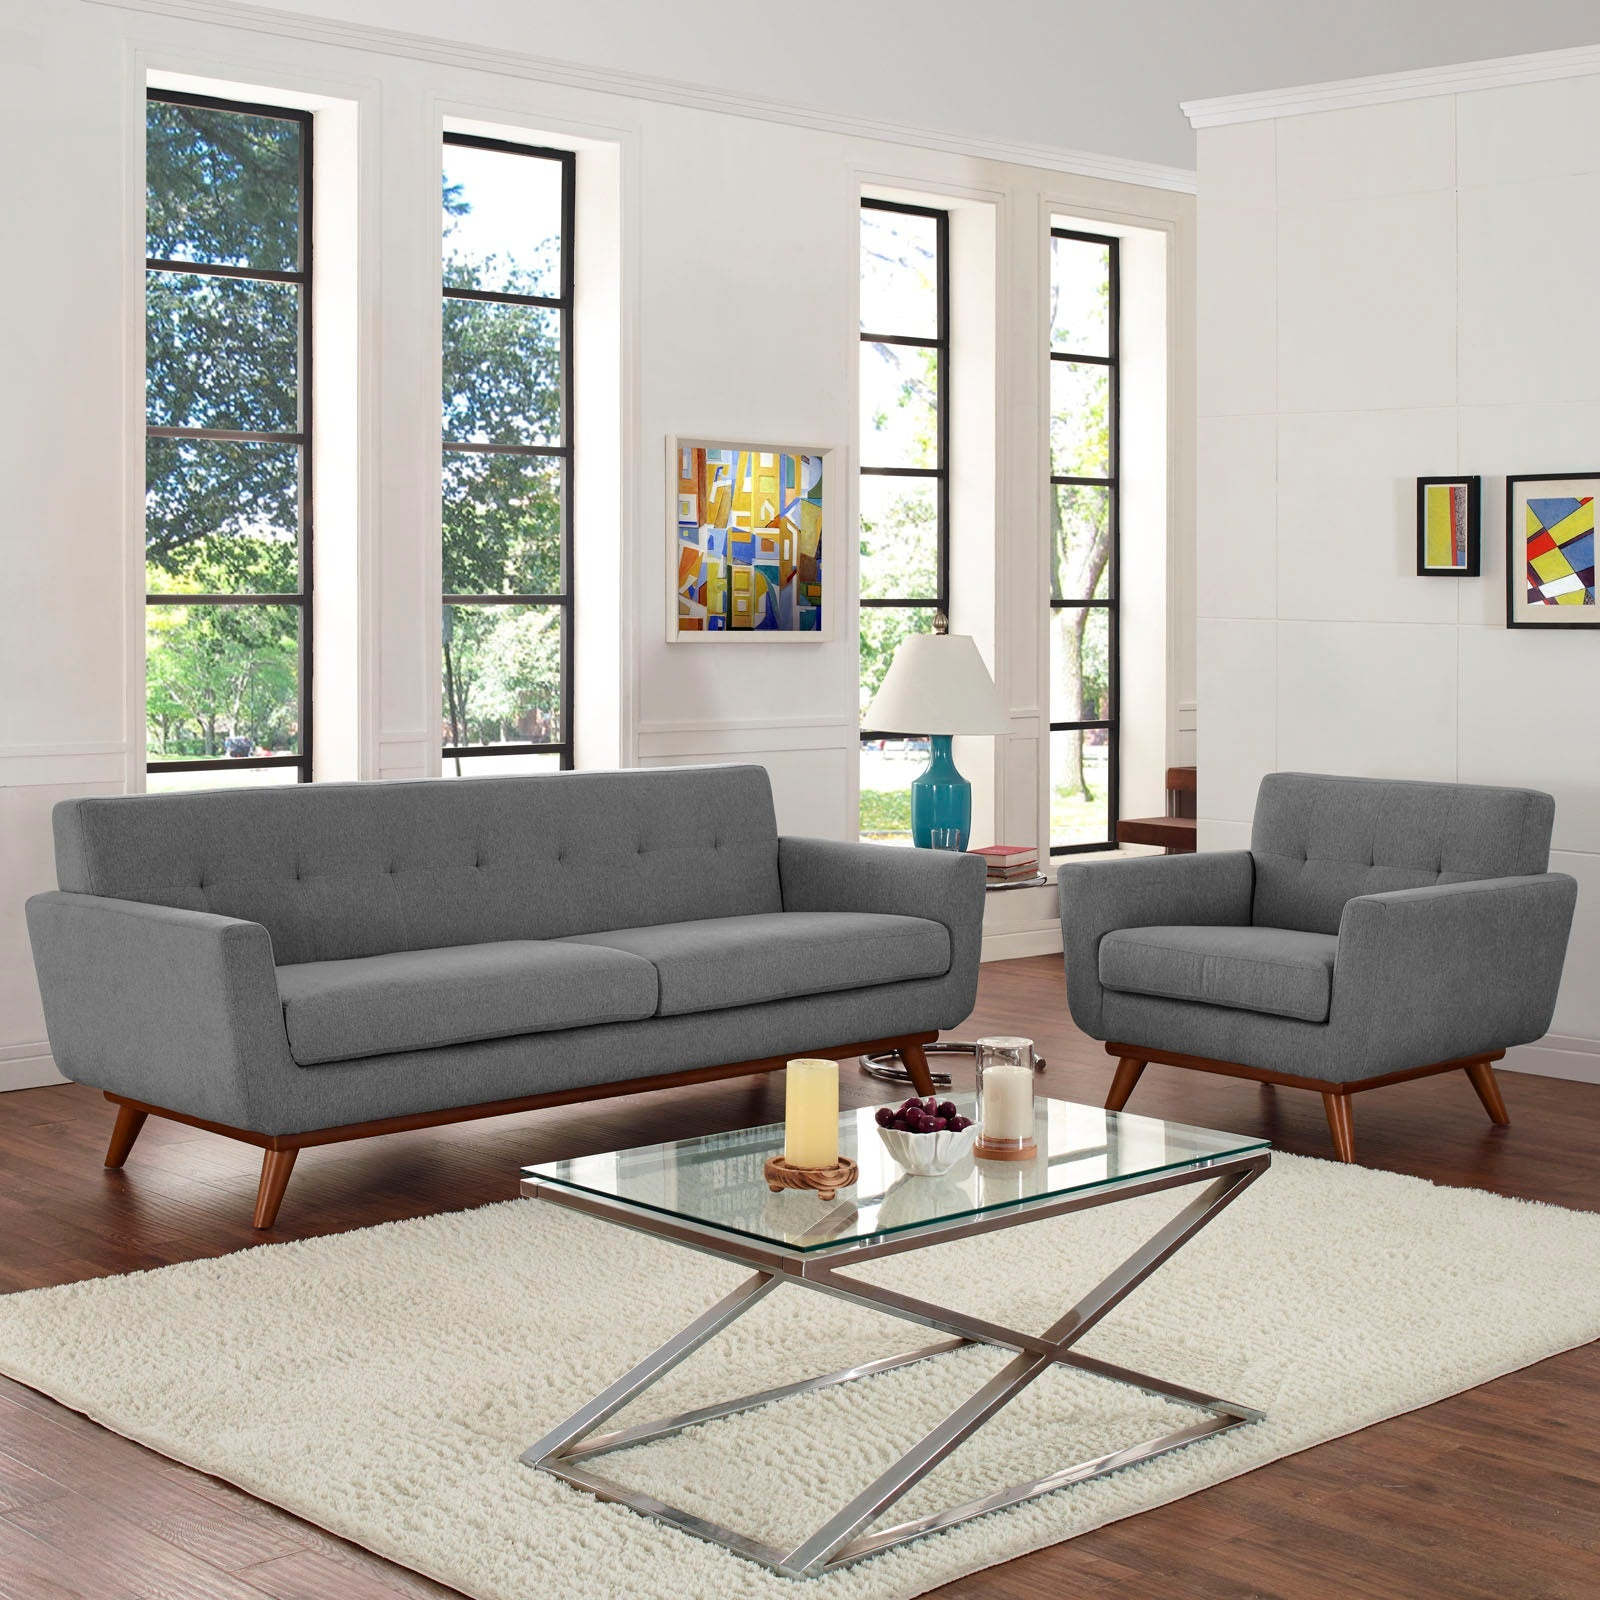 Engage Armchair and Sofa Set of 2 - Expectation Gray